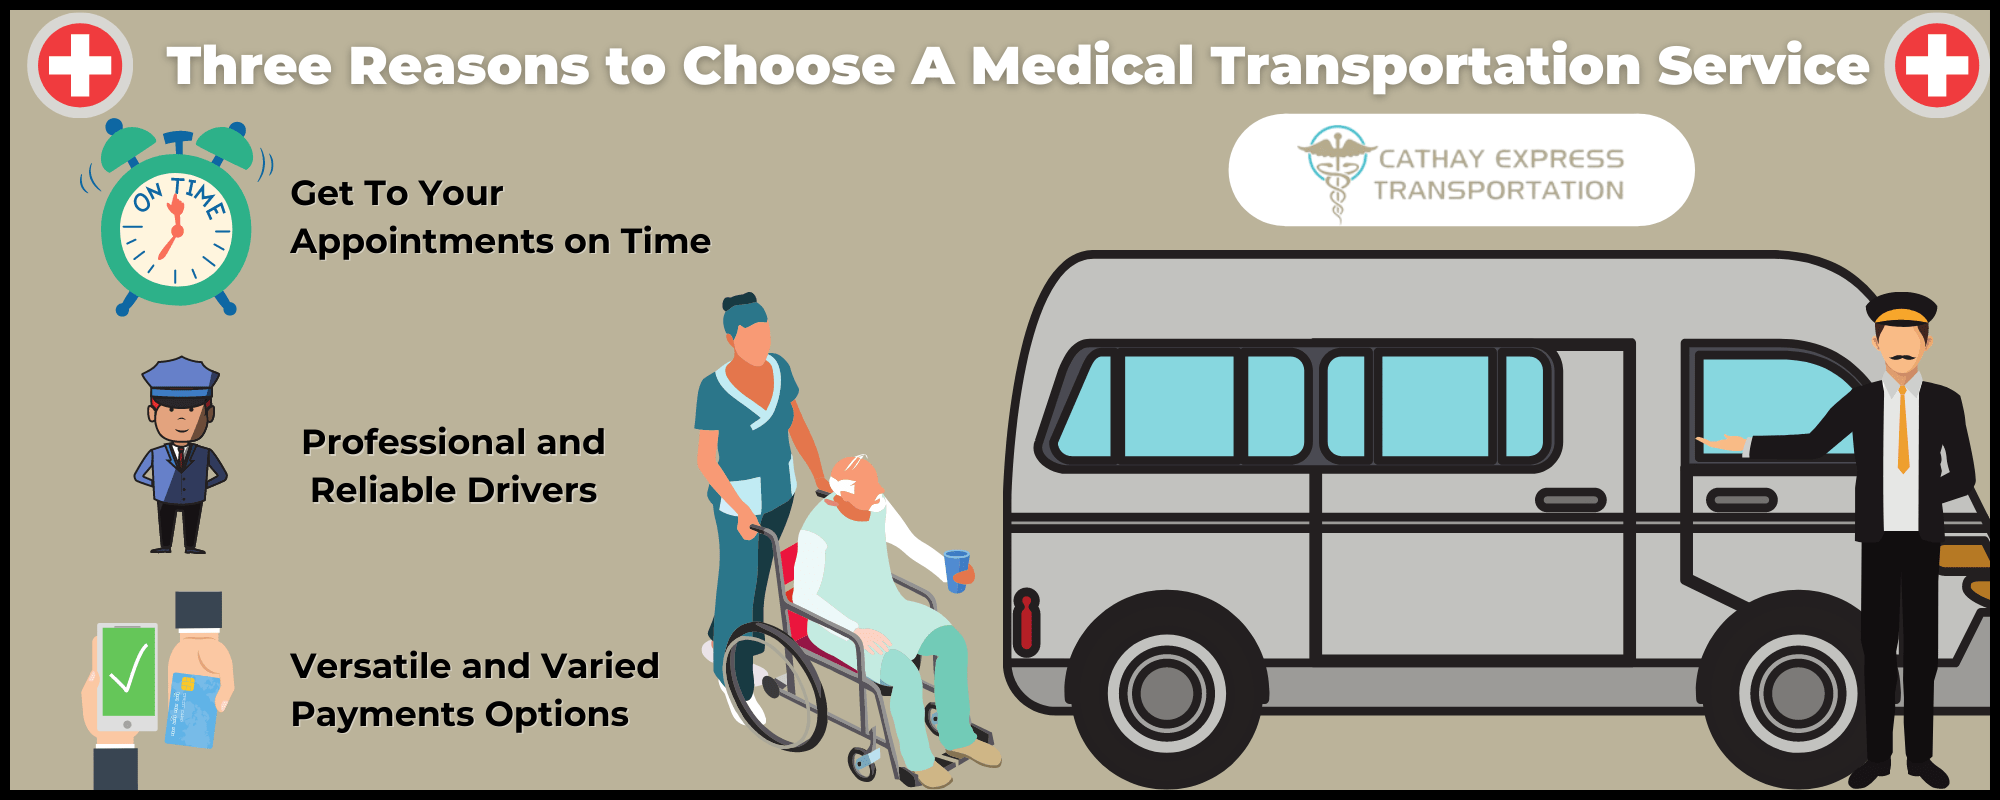 Infographic explaining why dialysis patients should consider medical transportation services